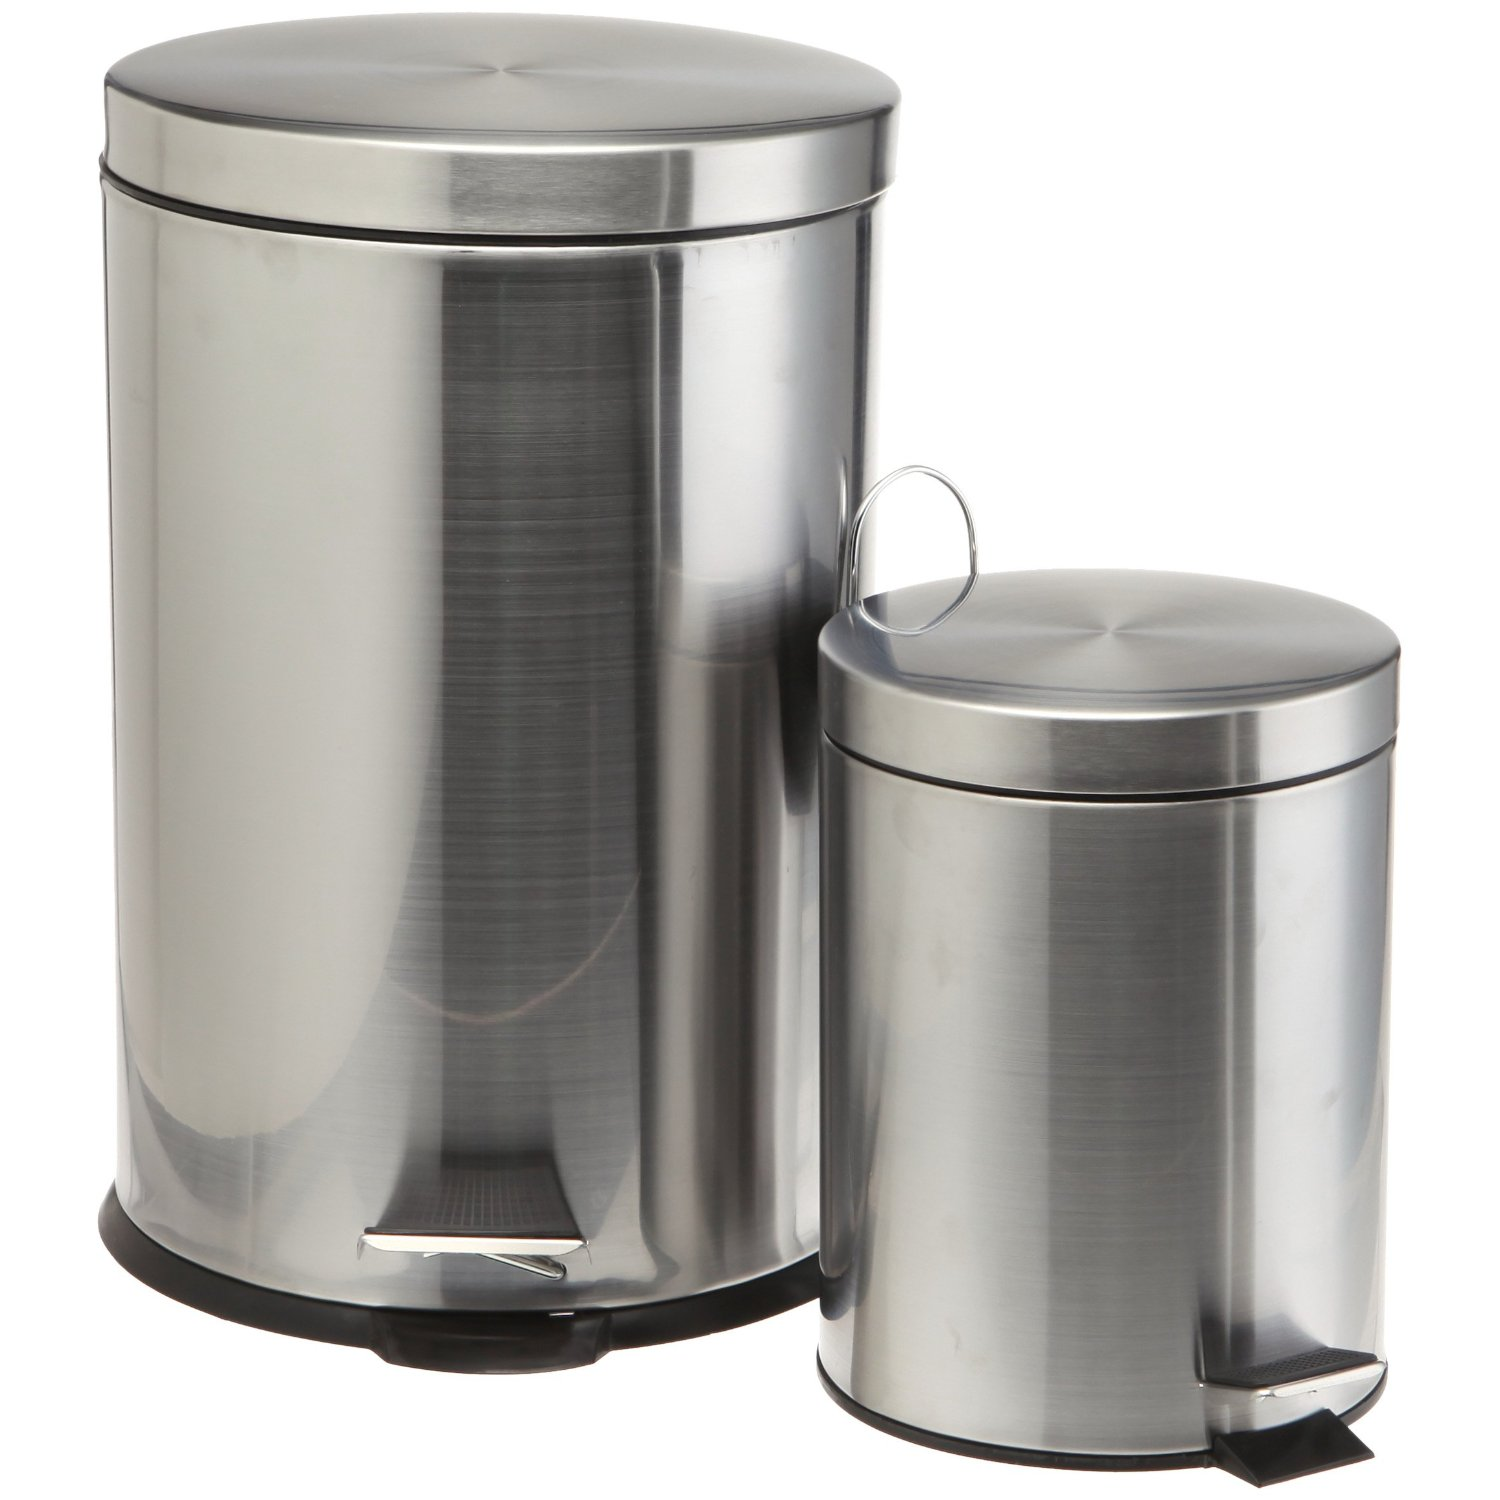 Rvs Vuilnisbak Stainless Steel Trash Cans Polished